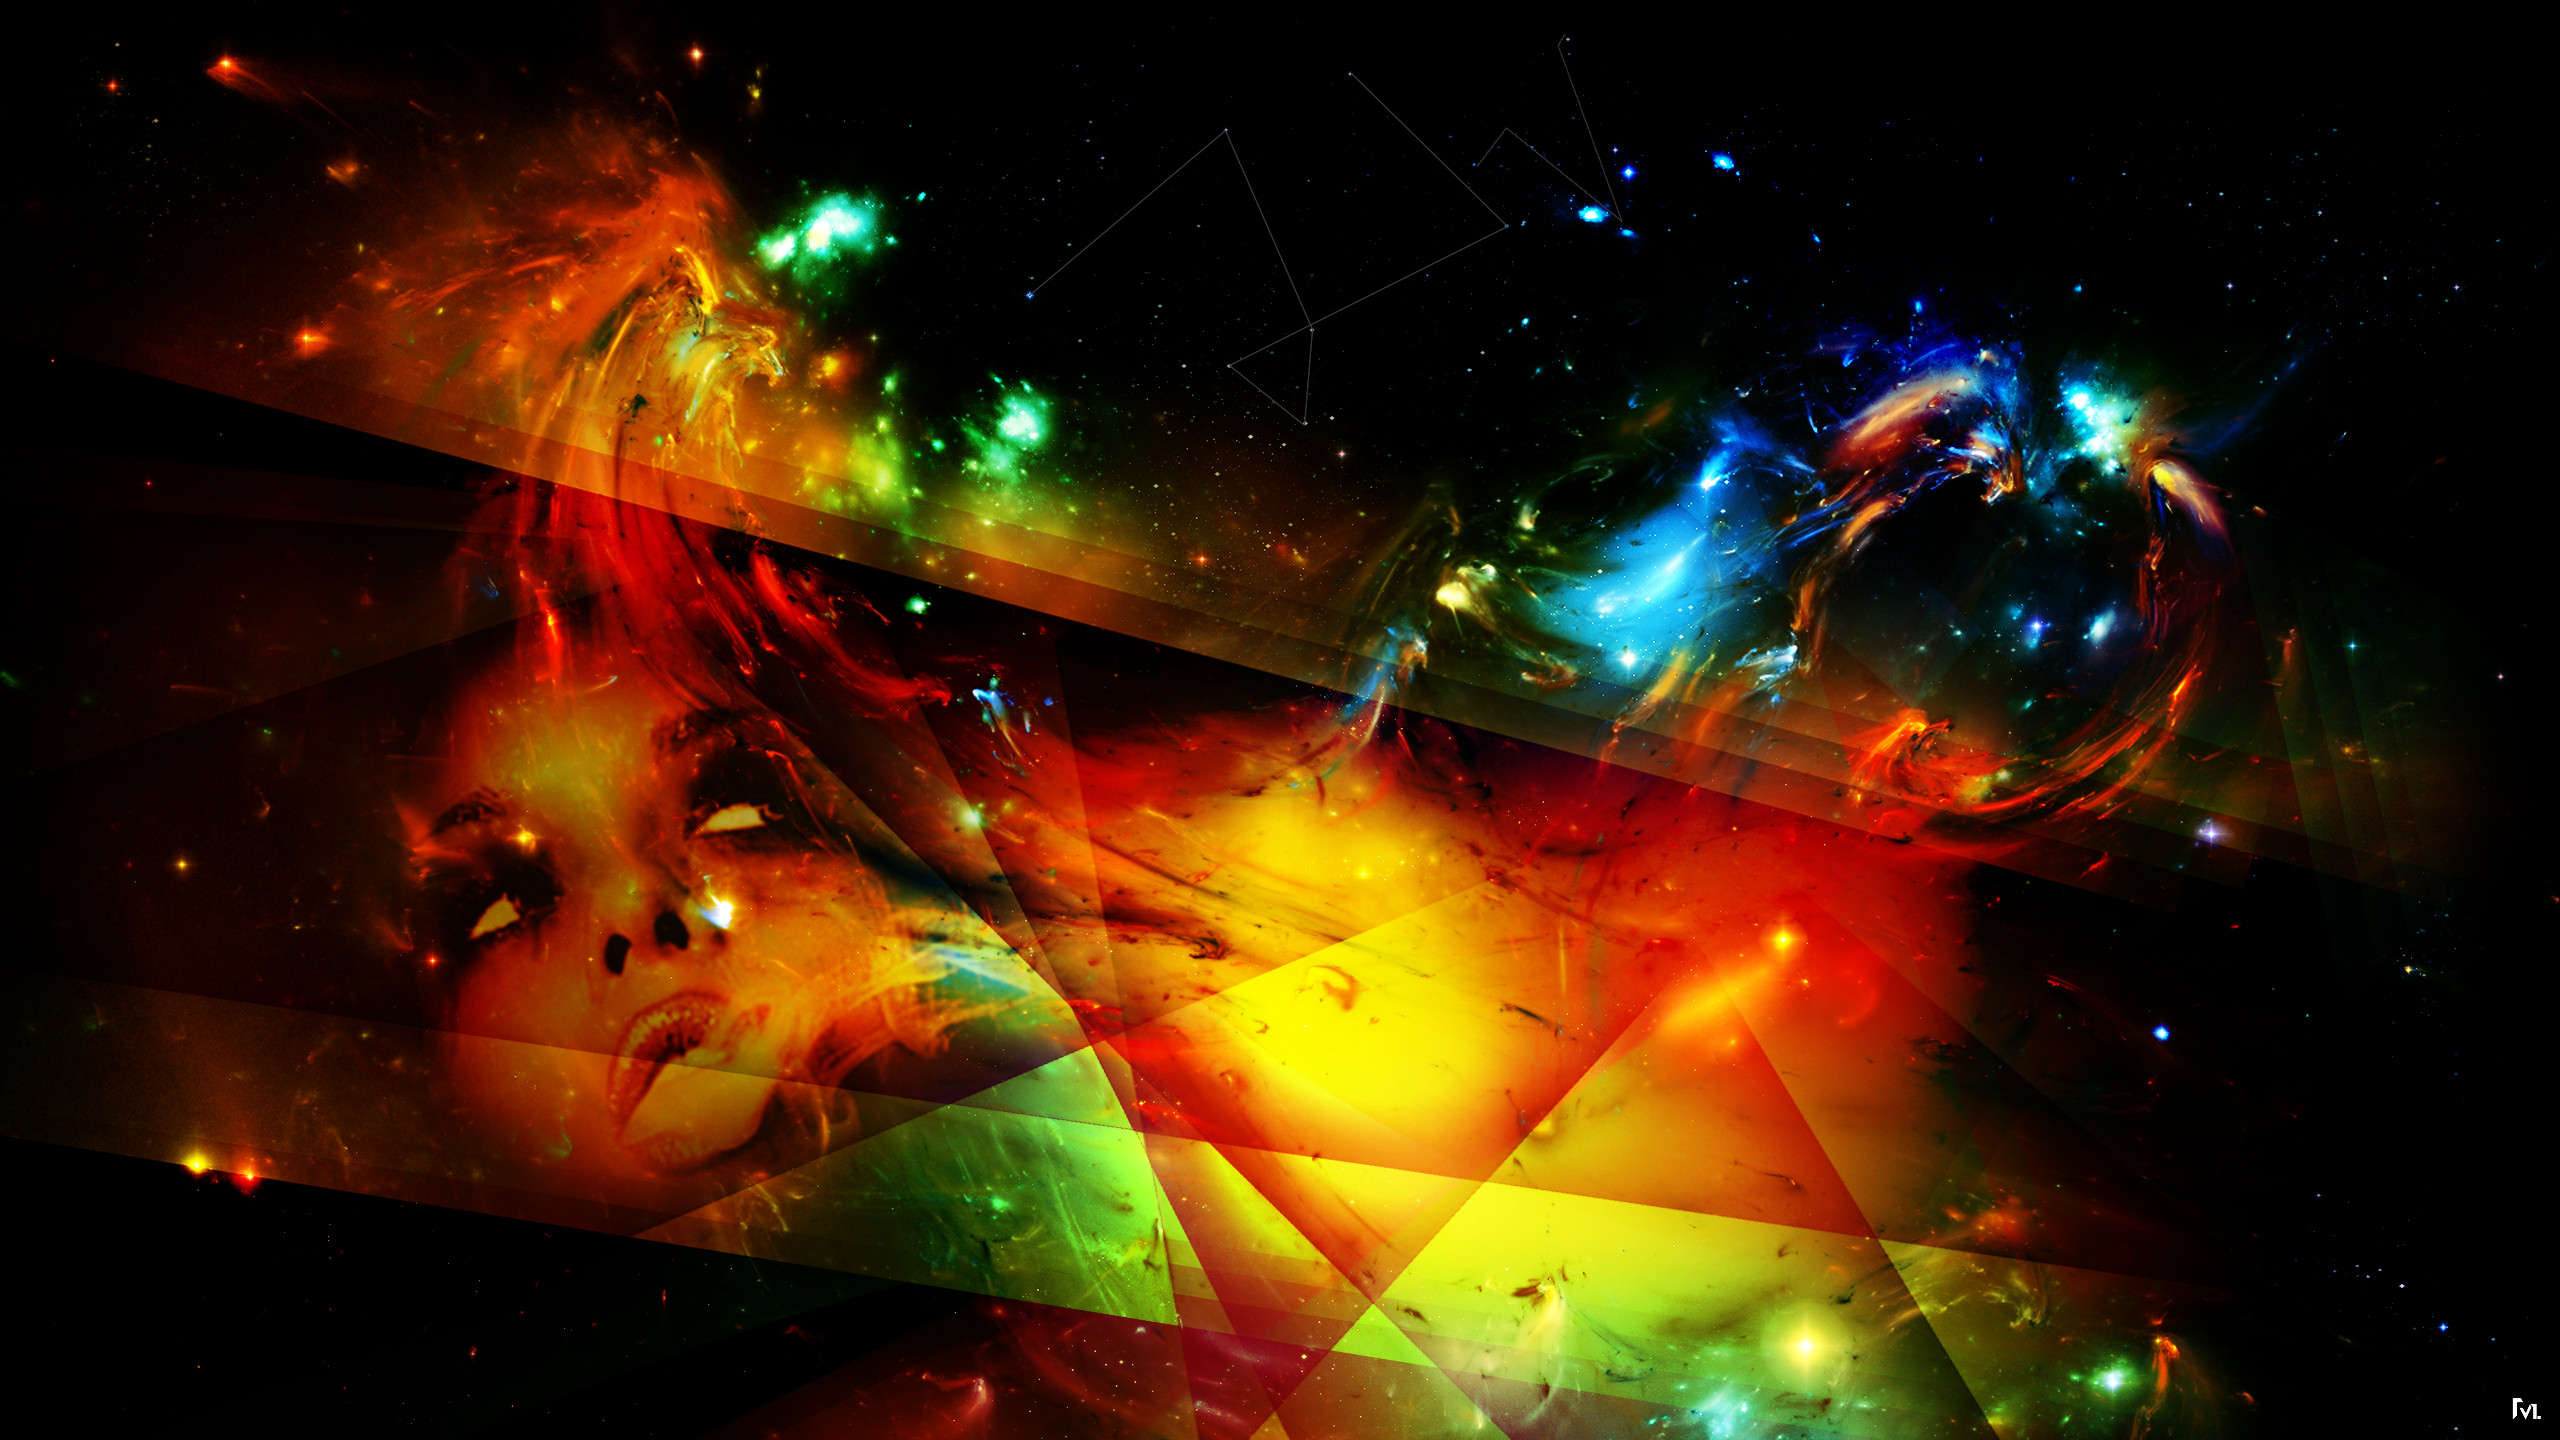 Abstract Art Desktop Wallpapers Widescreen 2560x1440